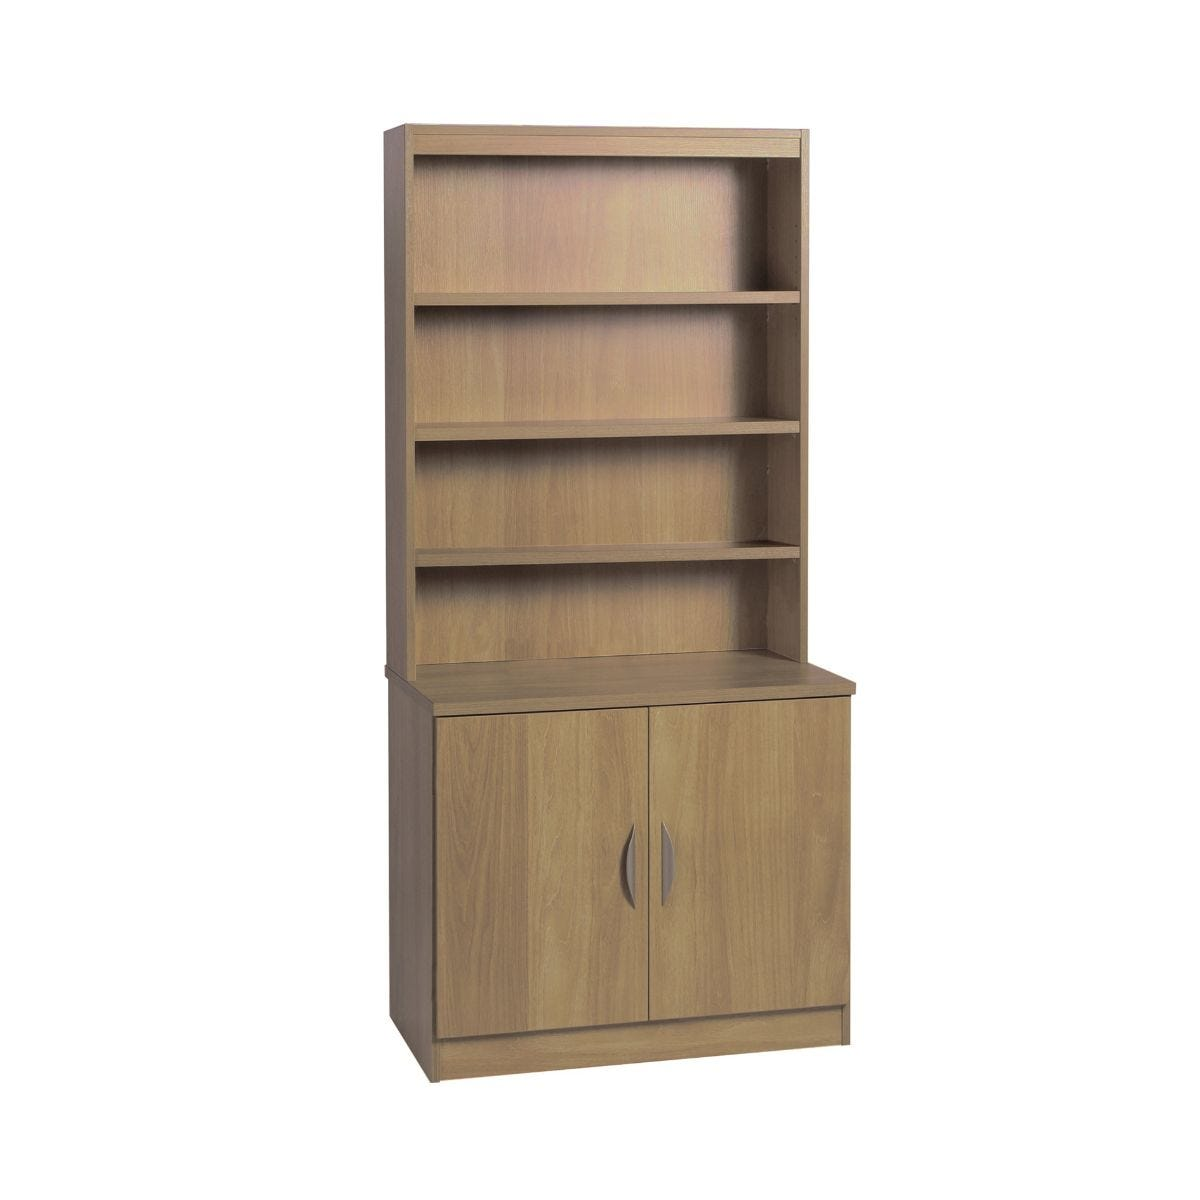 R White Desk Height Cupboard 85cm with Overshelving, English Oak Wood Grain